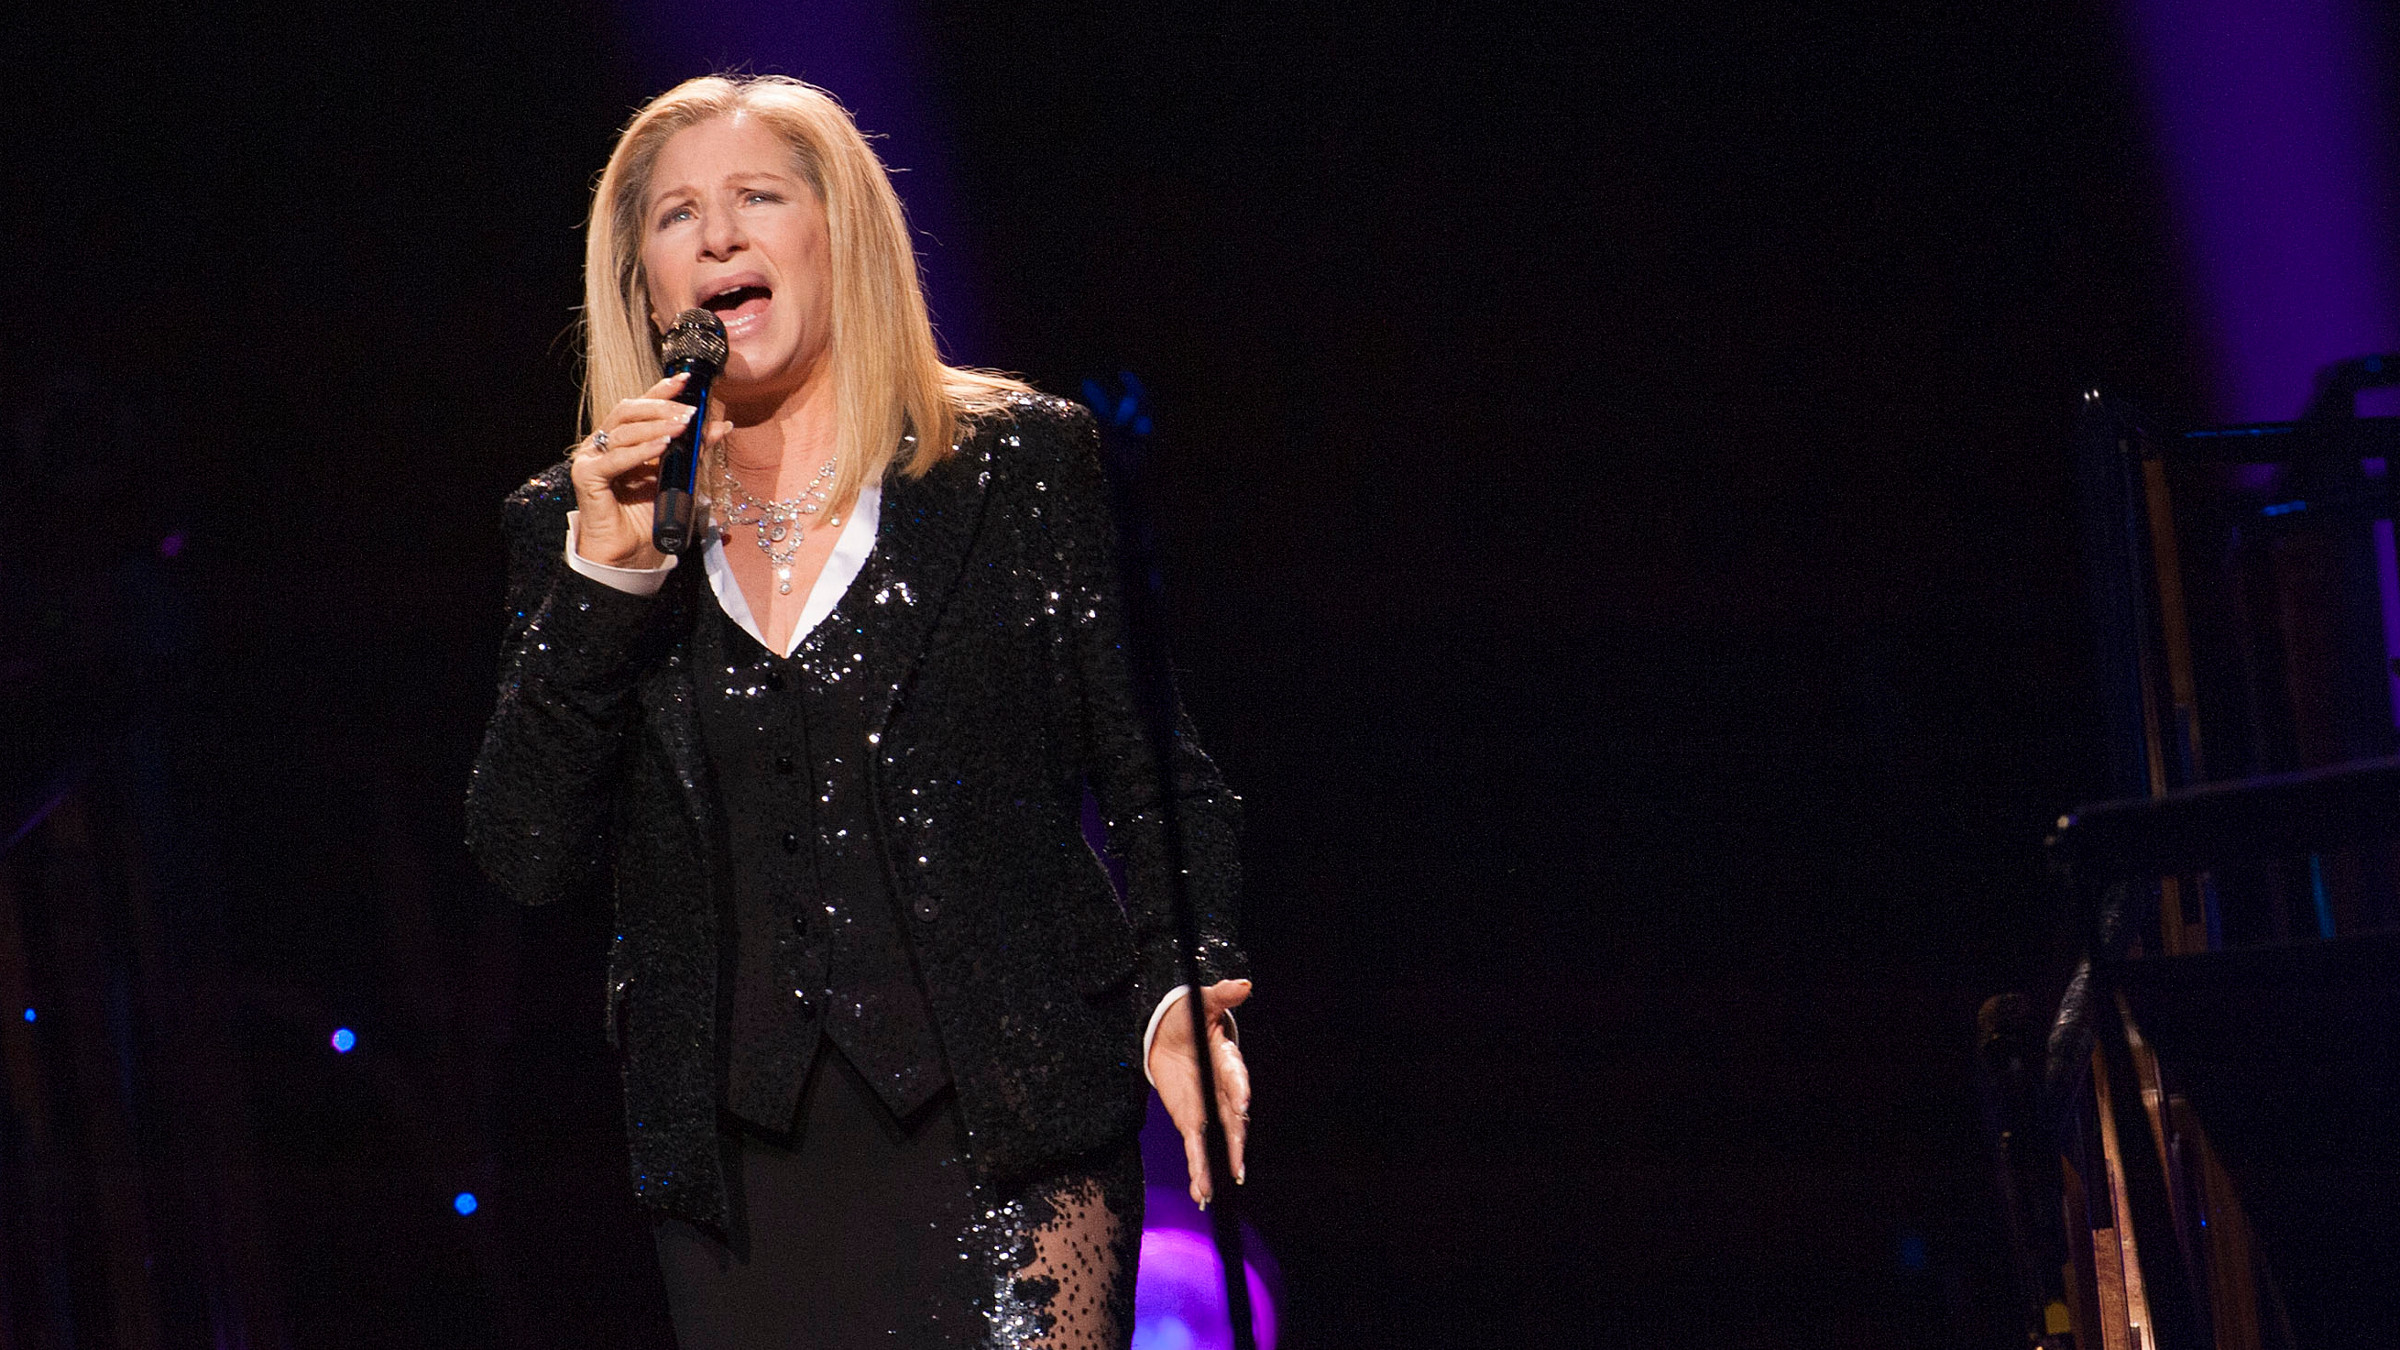 Barbra Streisand performs on stage at the Air Canada Centre on Tuesday, Oct. 23, 2012, in Toronto.